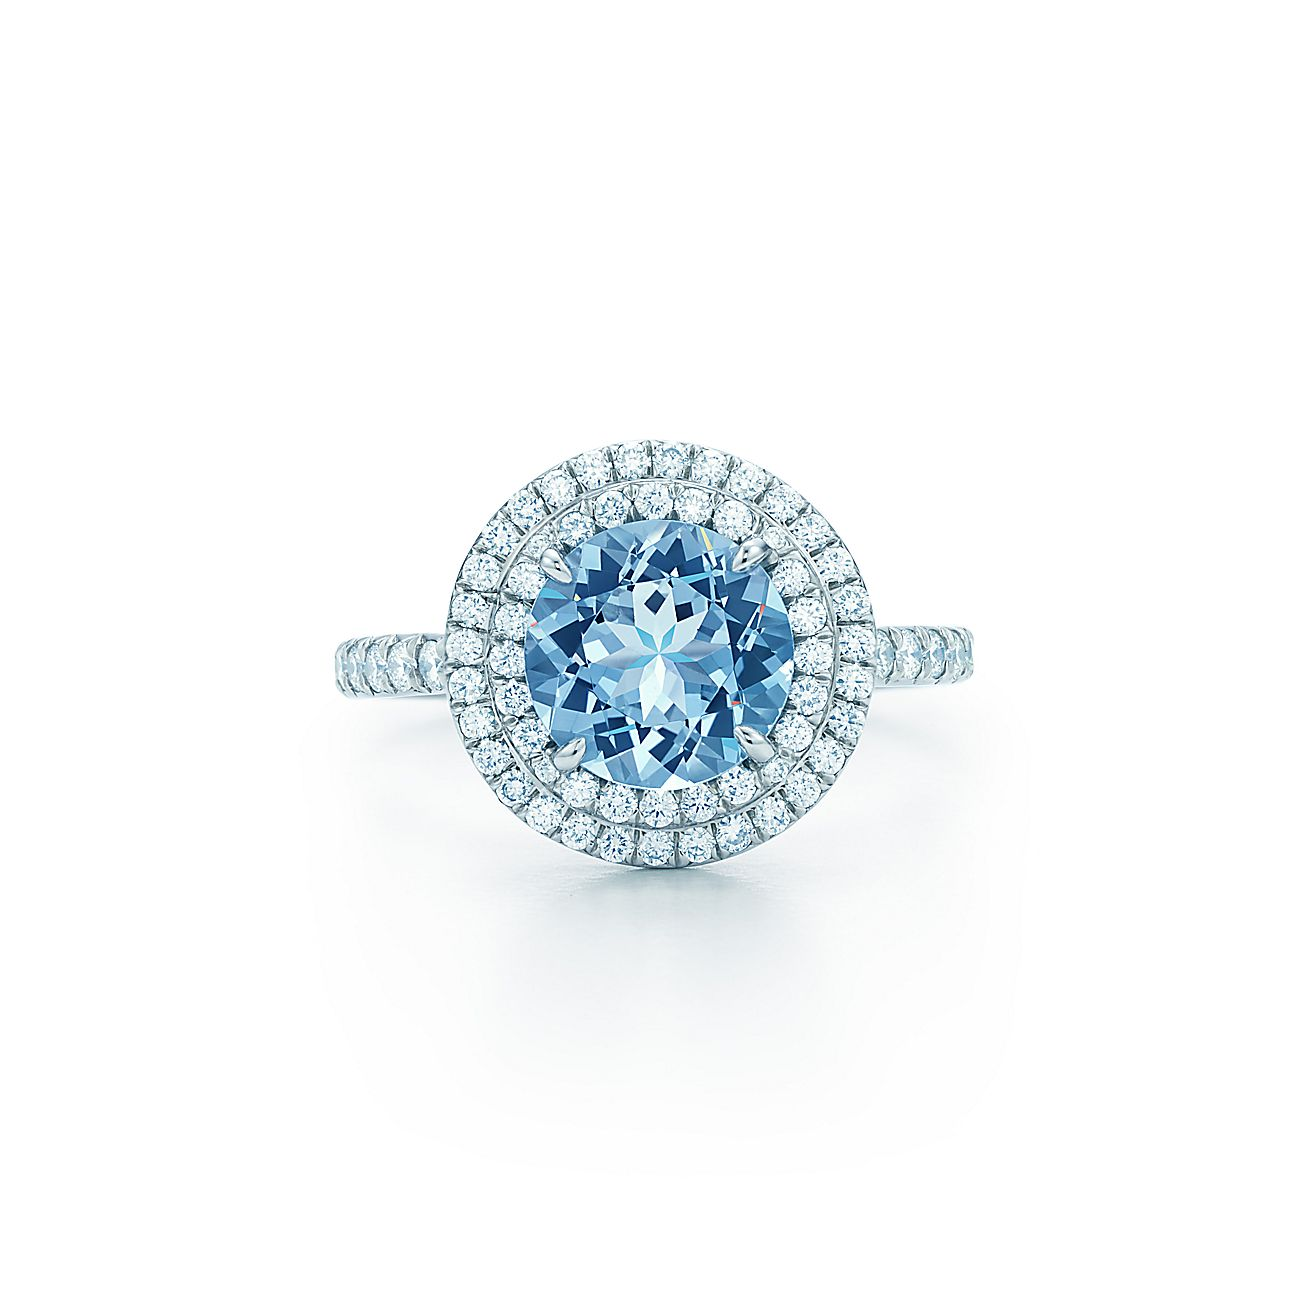 Tiffany Soleste® Ring In Platinum With A 70carat Aquamarine And Diamonds   Tiffany & Co